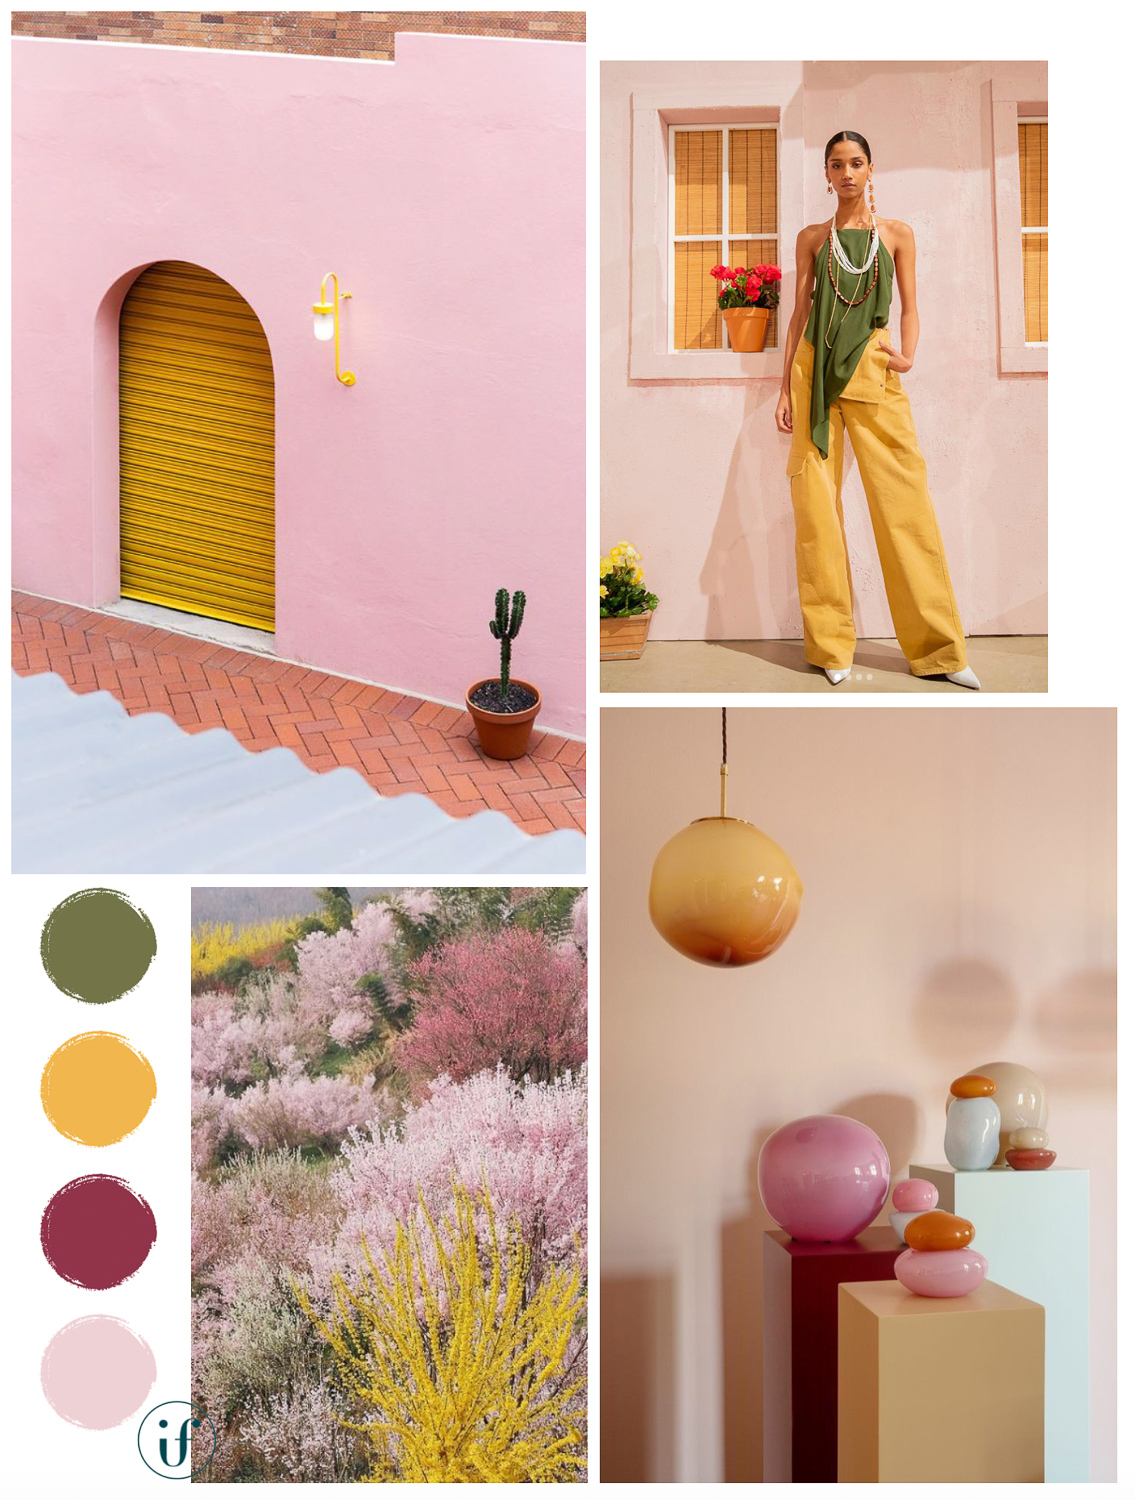 ilaria fatone - moodboard - bright and colourful